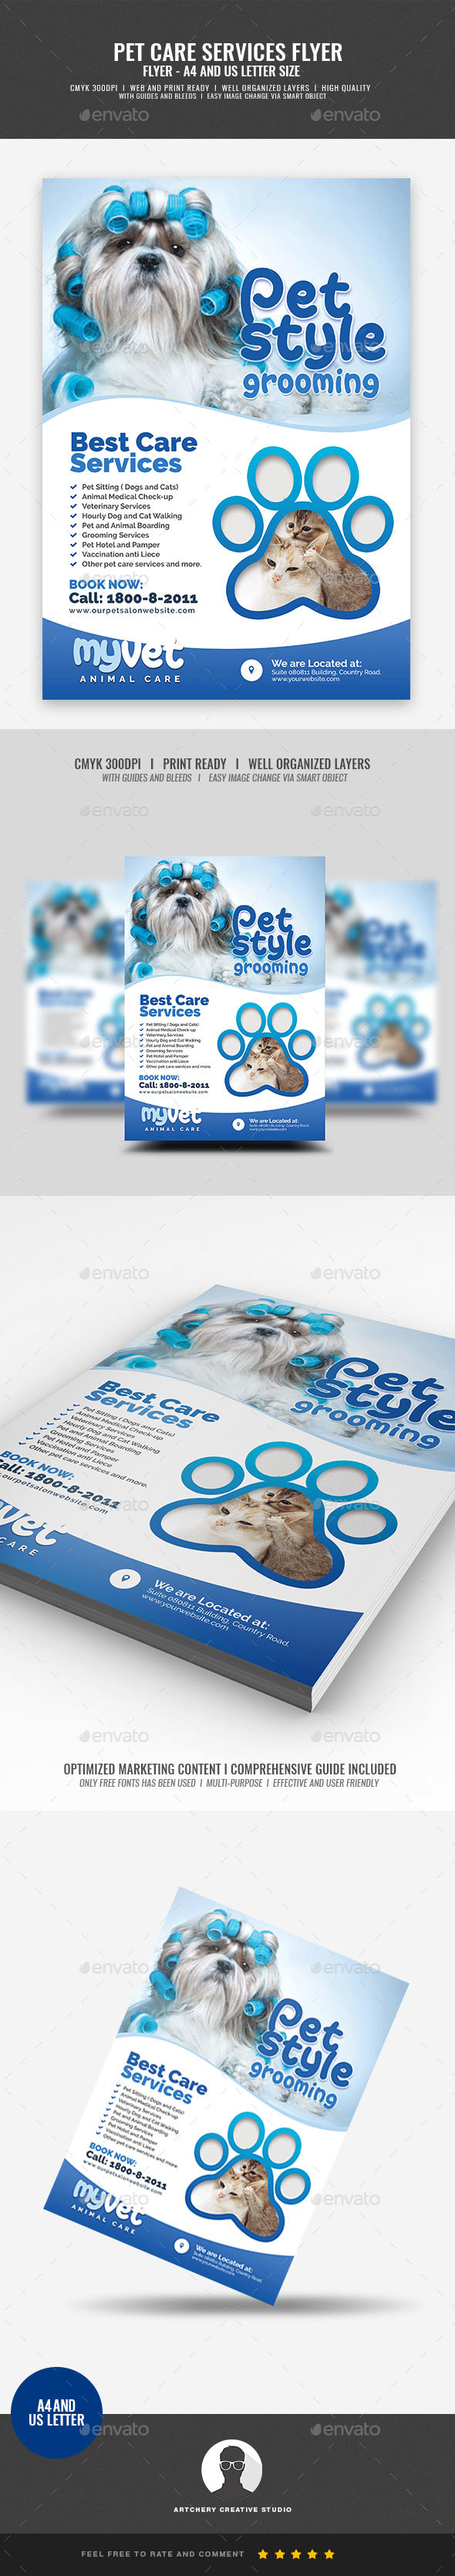 Pet Grooming and Veterinary Services Flyer - Corporate Flyers